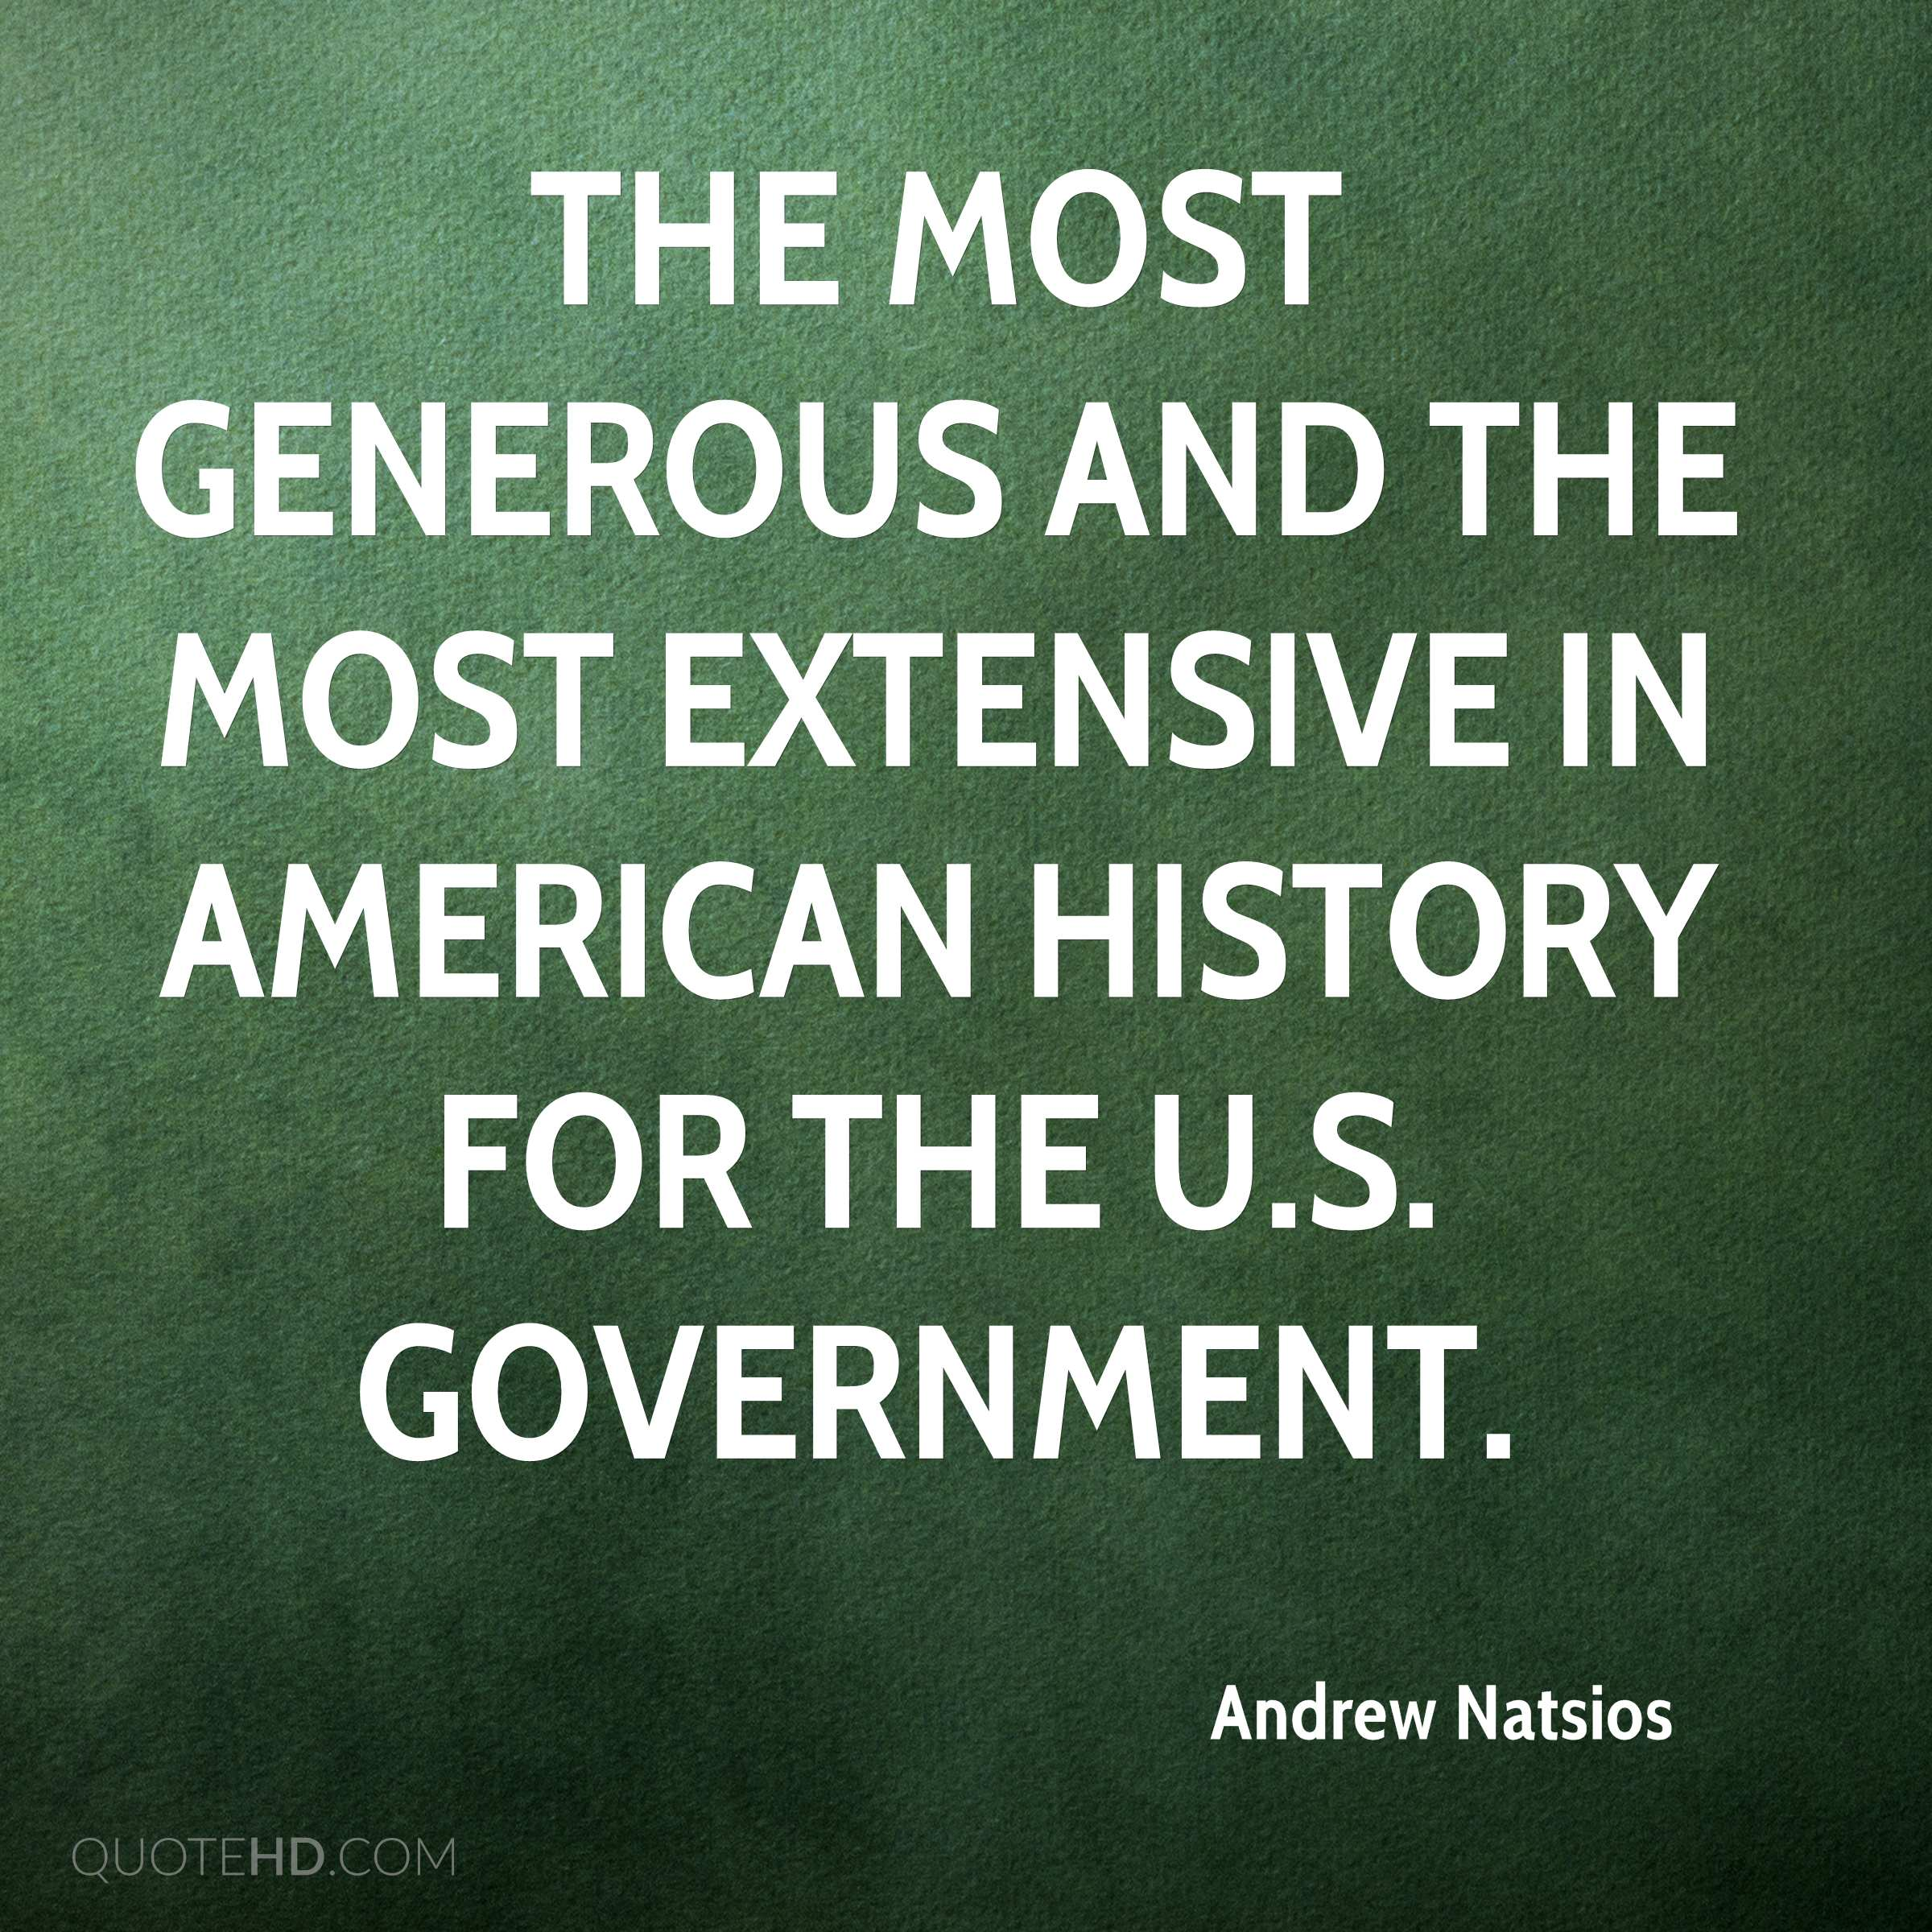 the most generous and the most extensive in American history for the U.S. government.